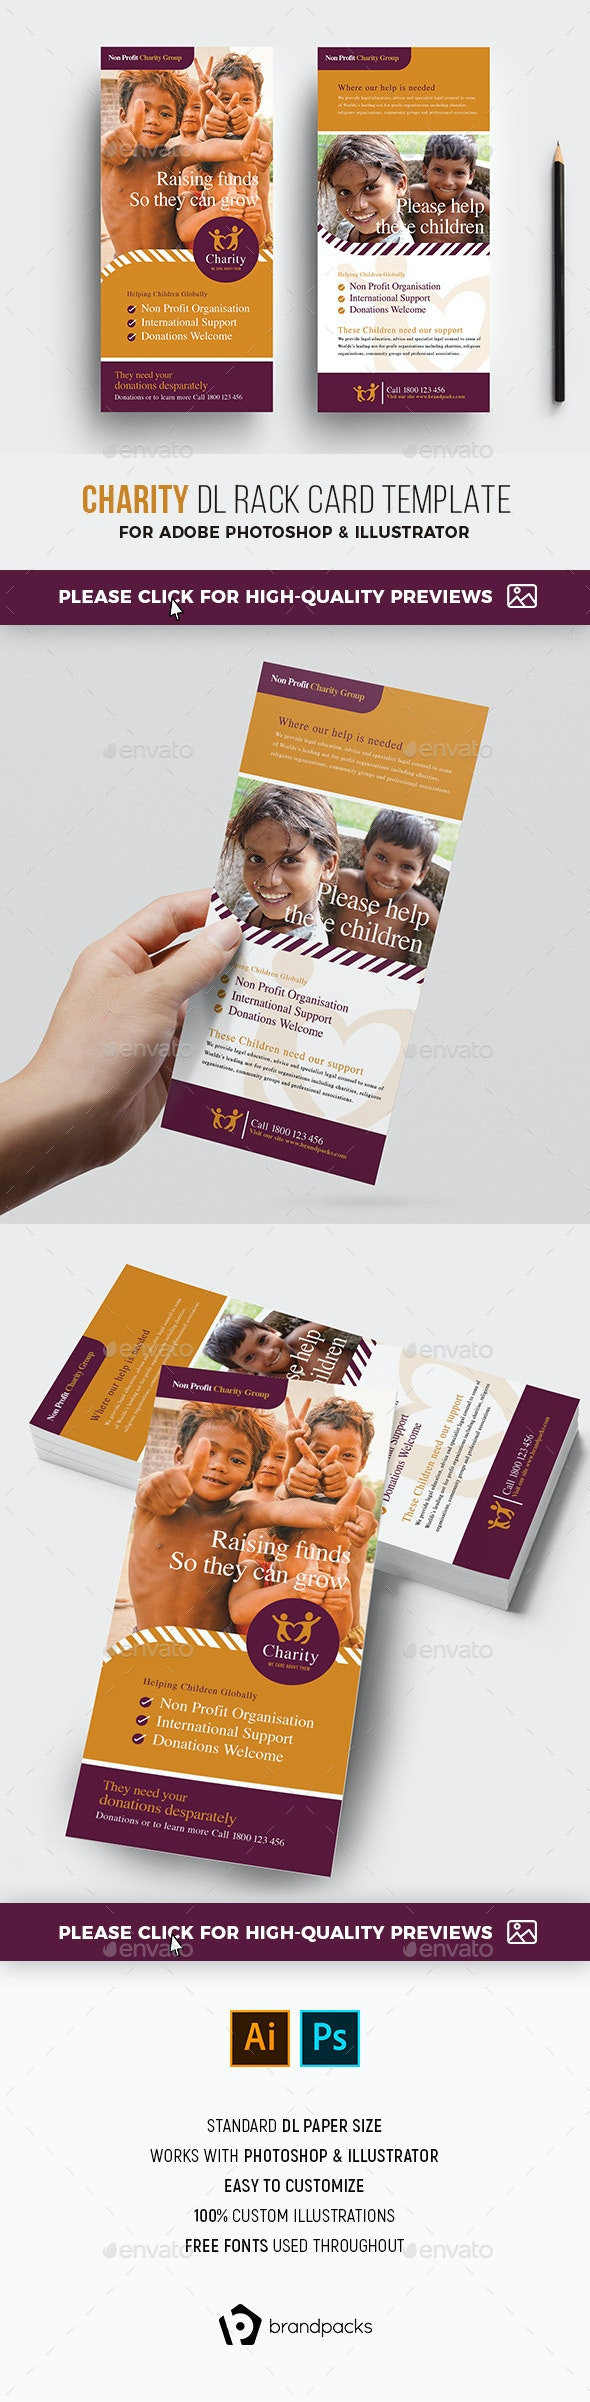 Charity DL Rack Card Template - Corporate Flyers